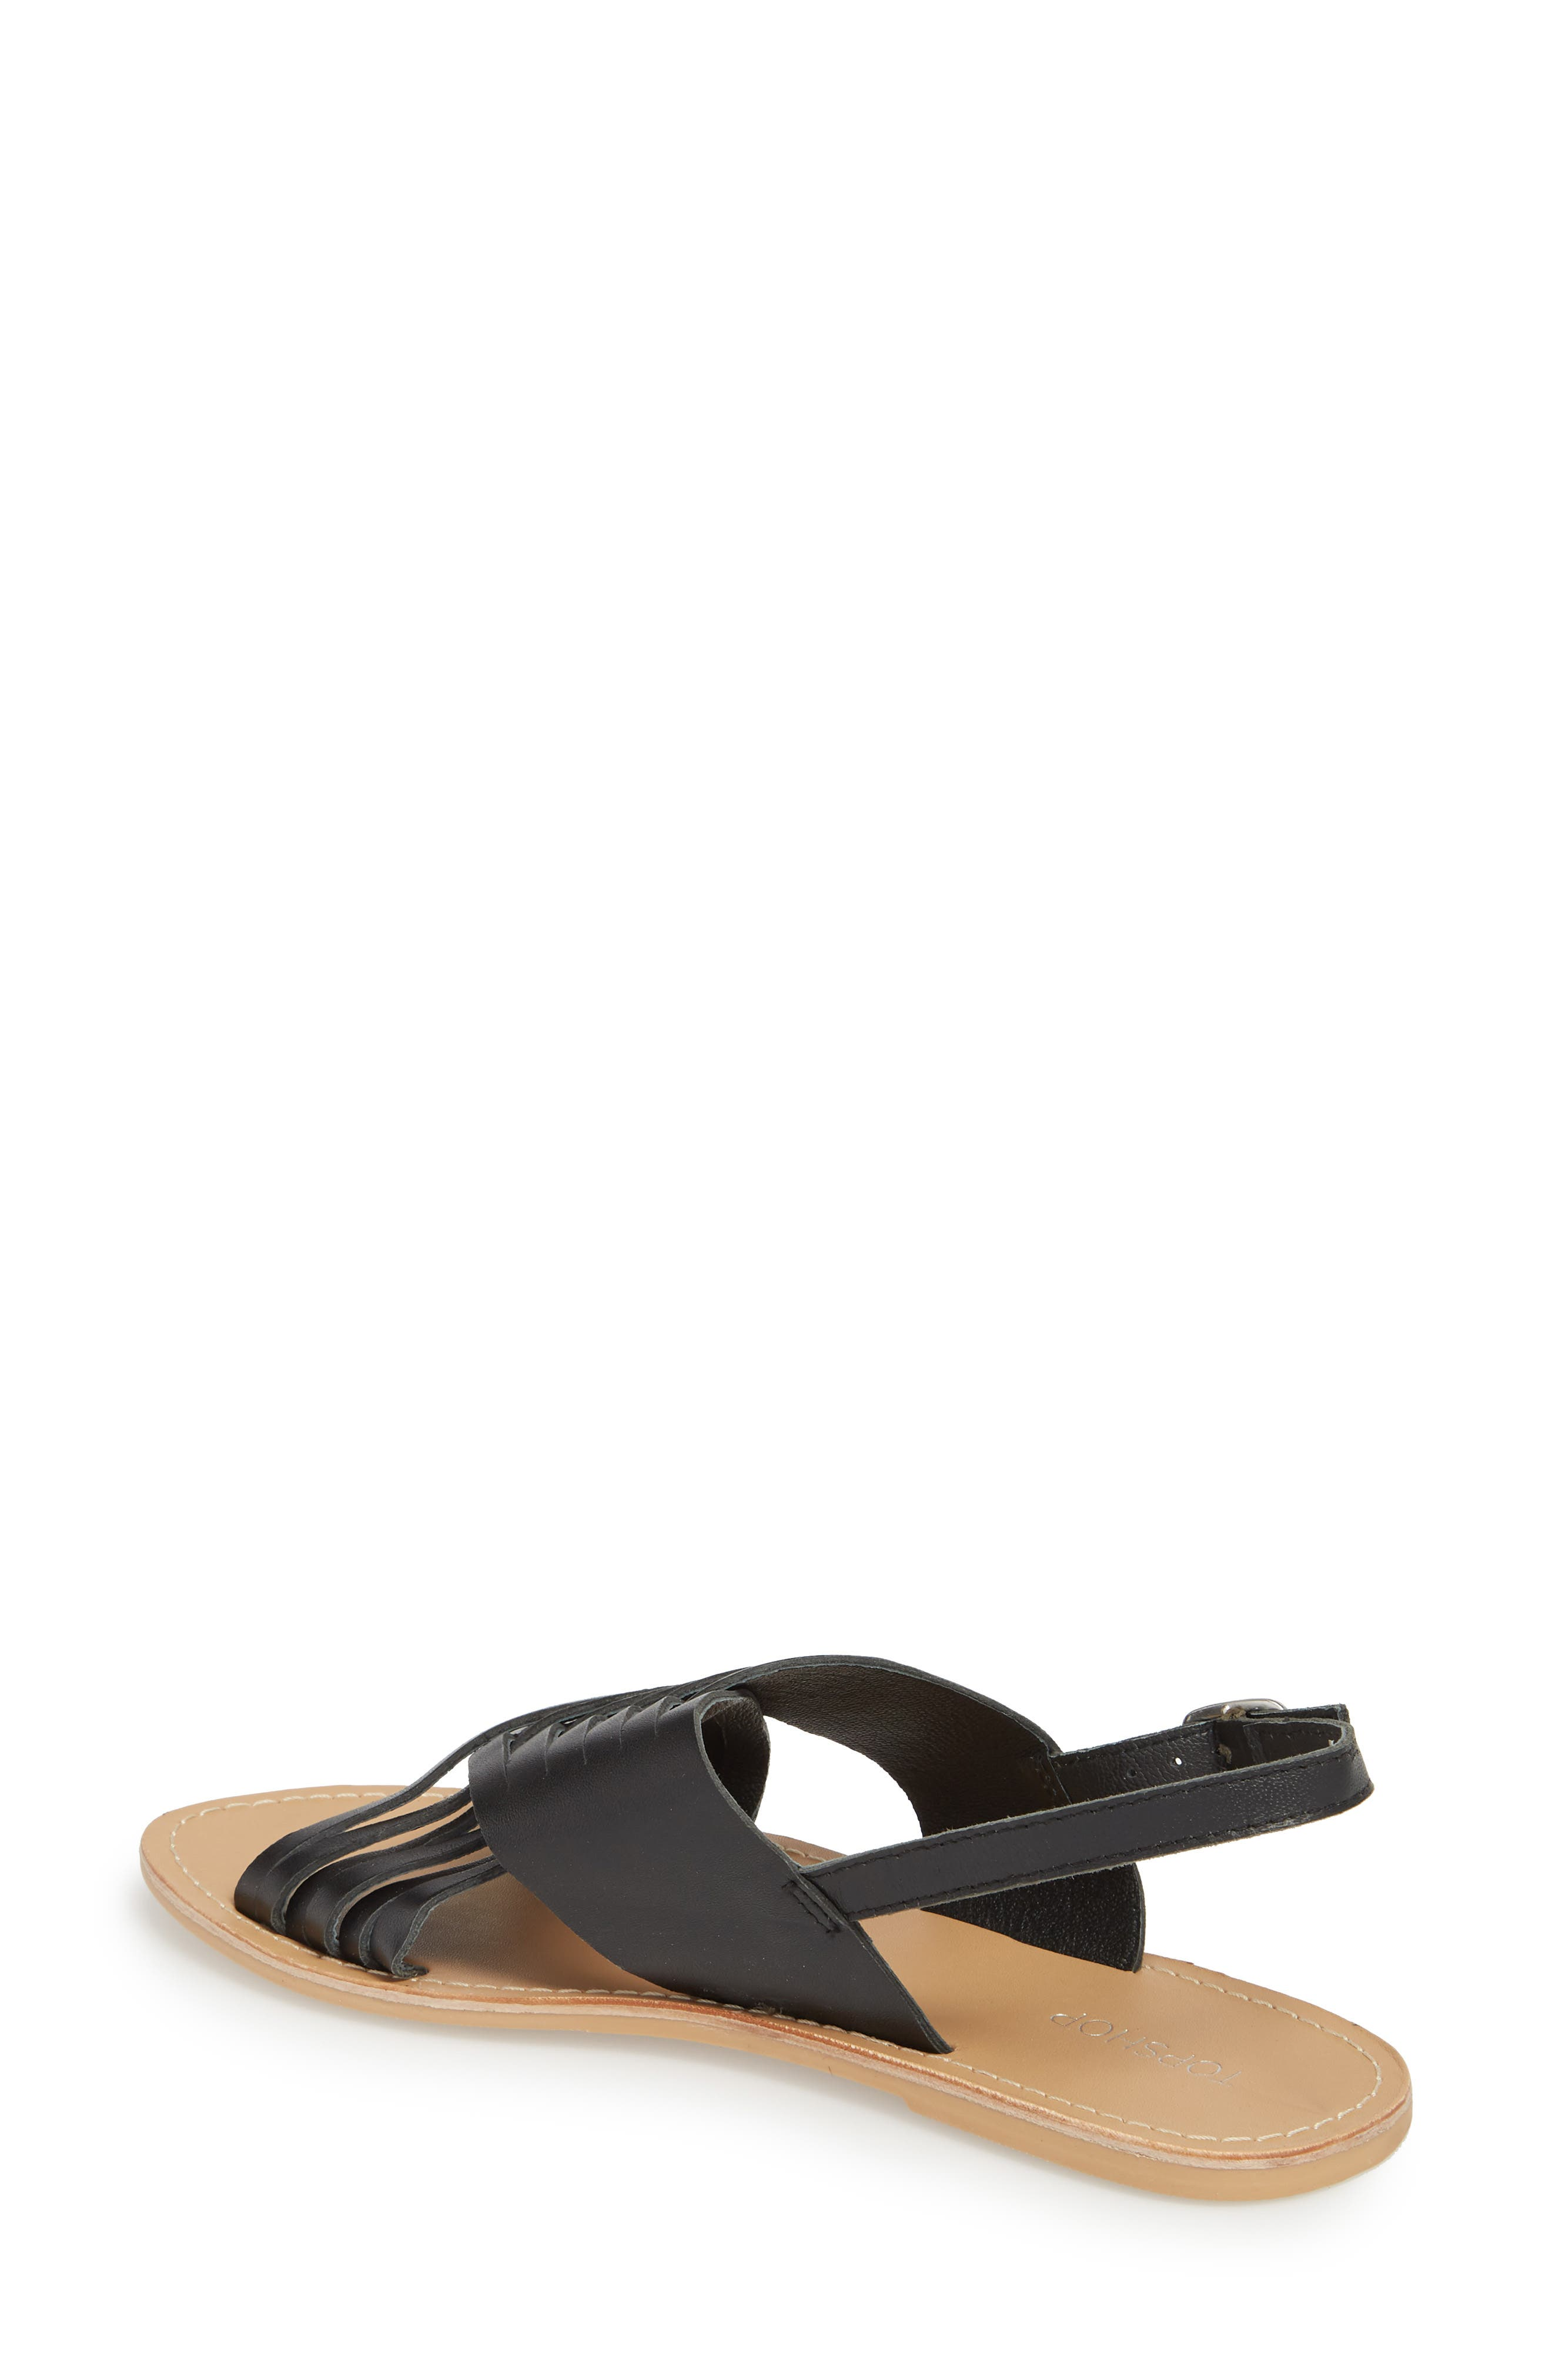 Hottie Cross Strap Flat Sandal,                             Alternate thumbnail 3, color,